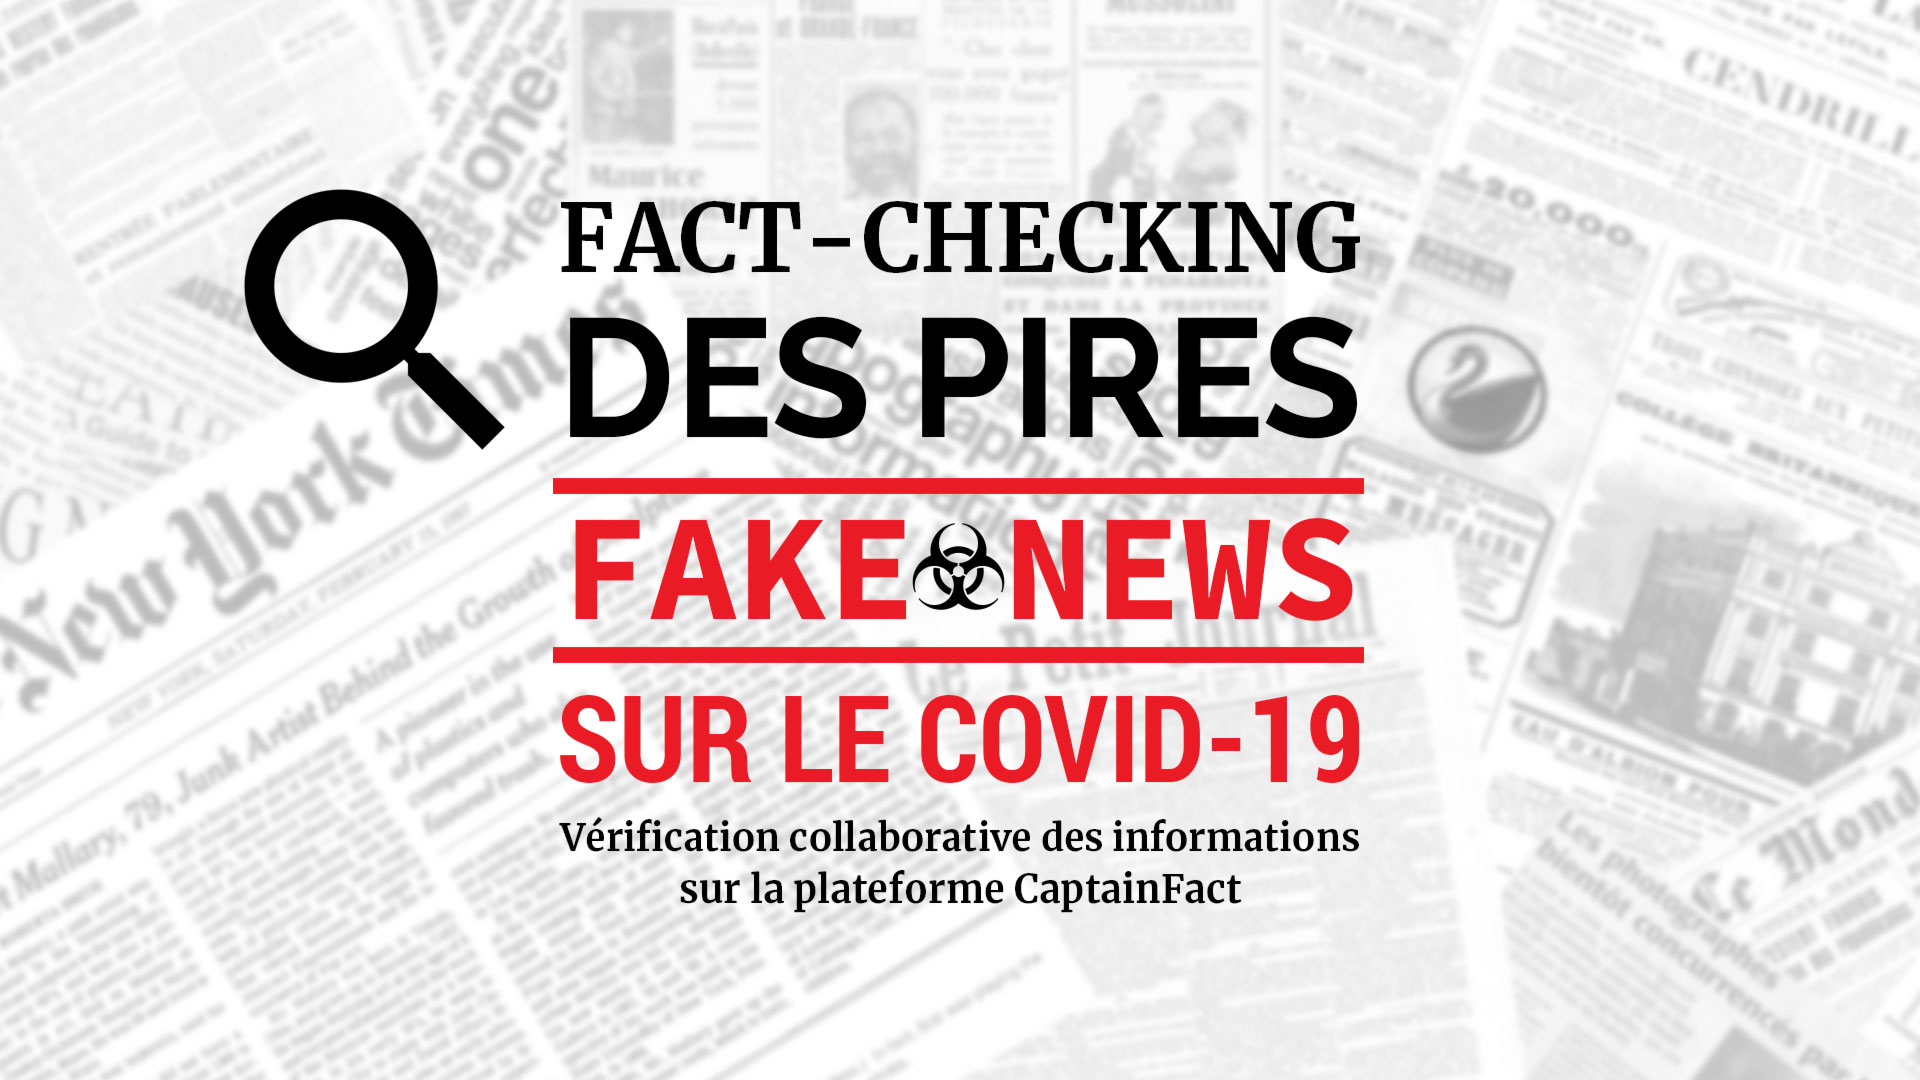 factchecking-covid19-fake-news